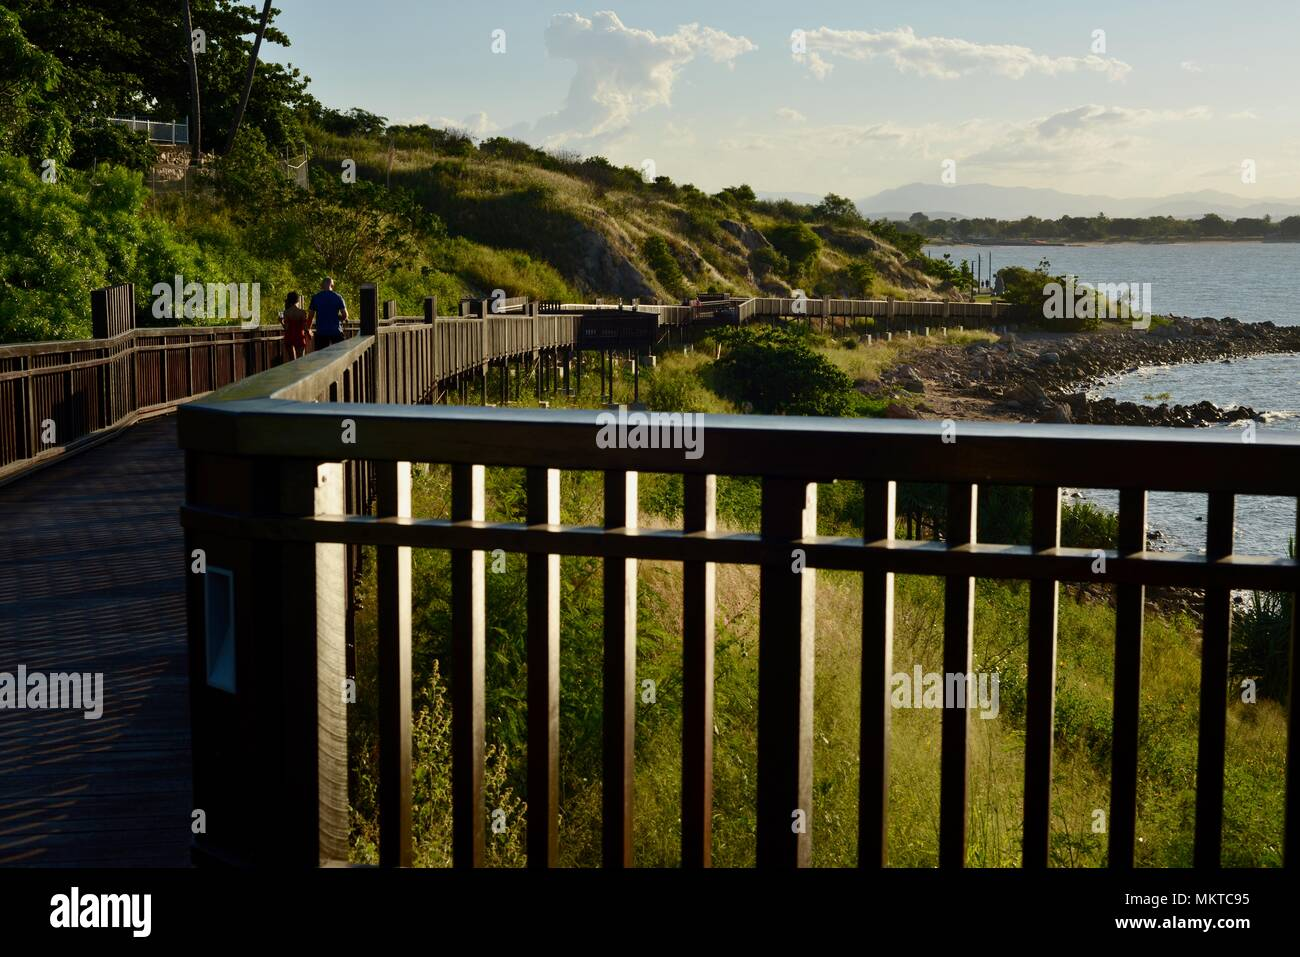 Die Coastal Promenade an jezzine Kasernen, Kissing Point fort, Townsville, Queensland, Australien Stockbild